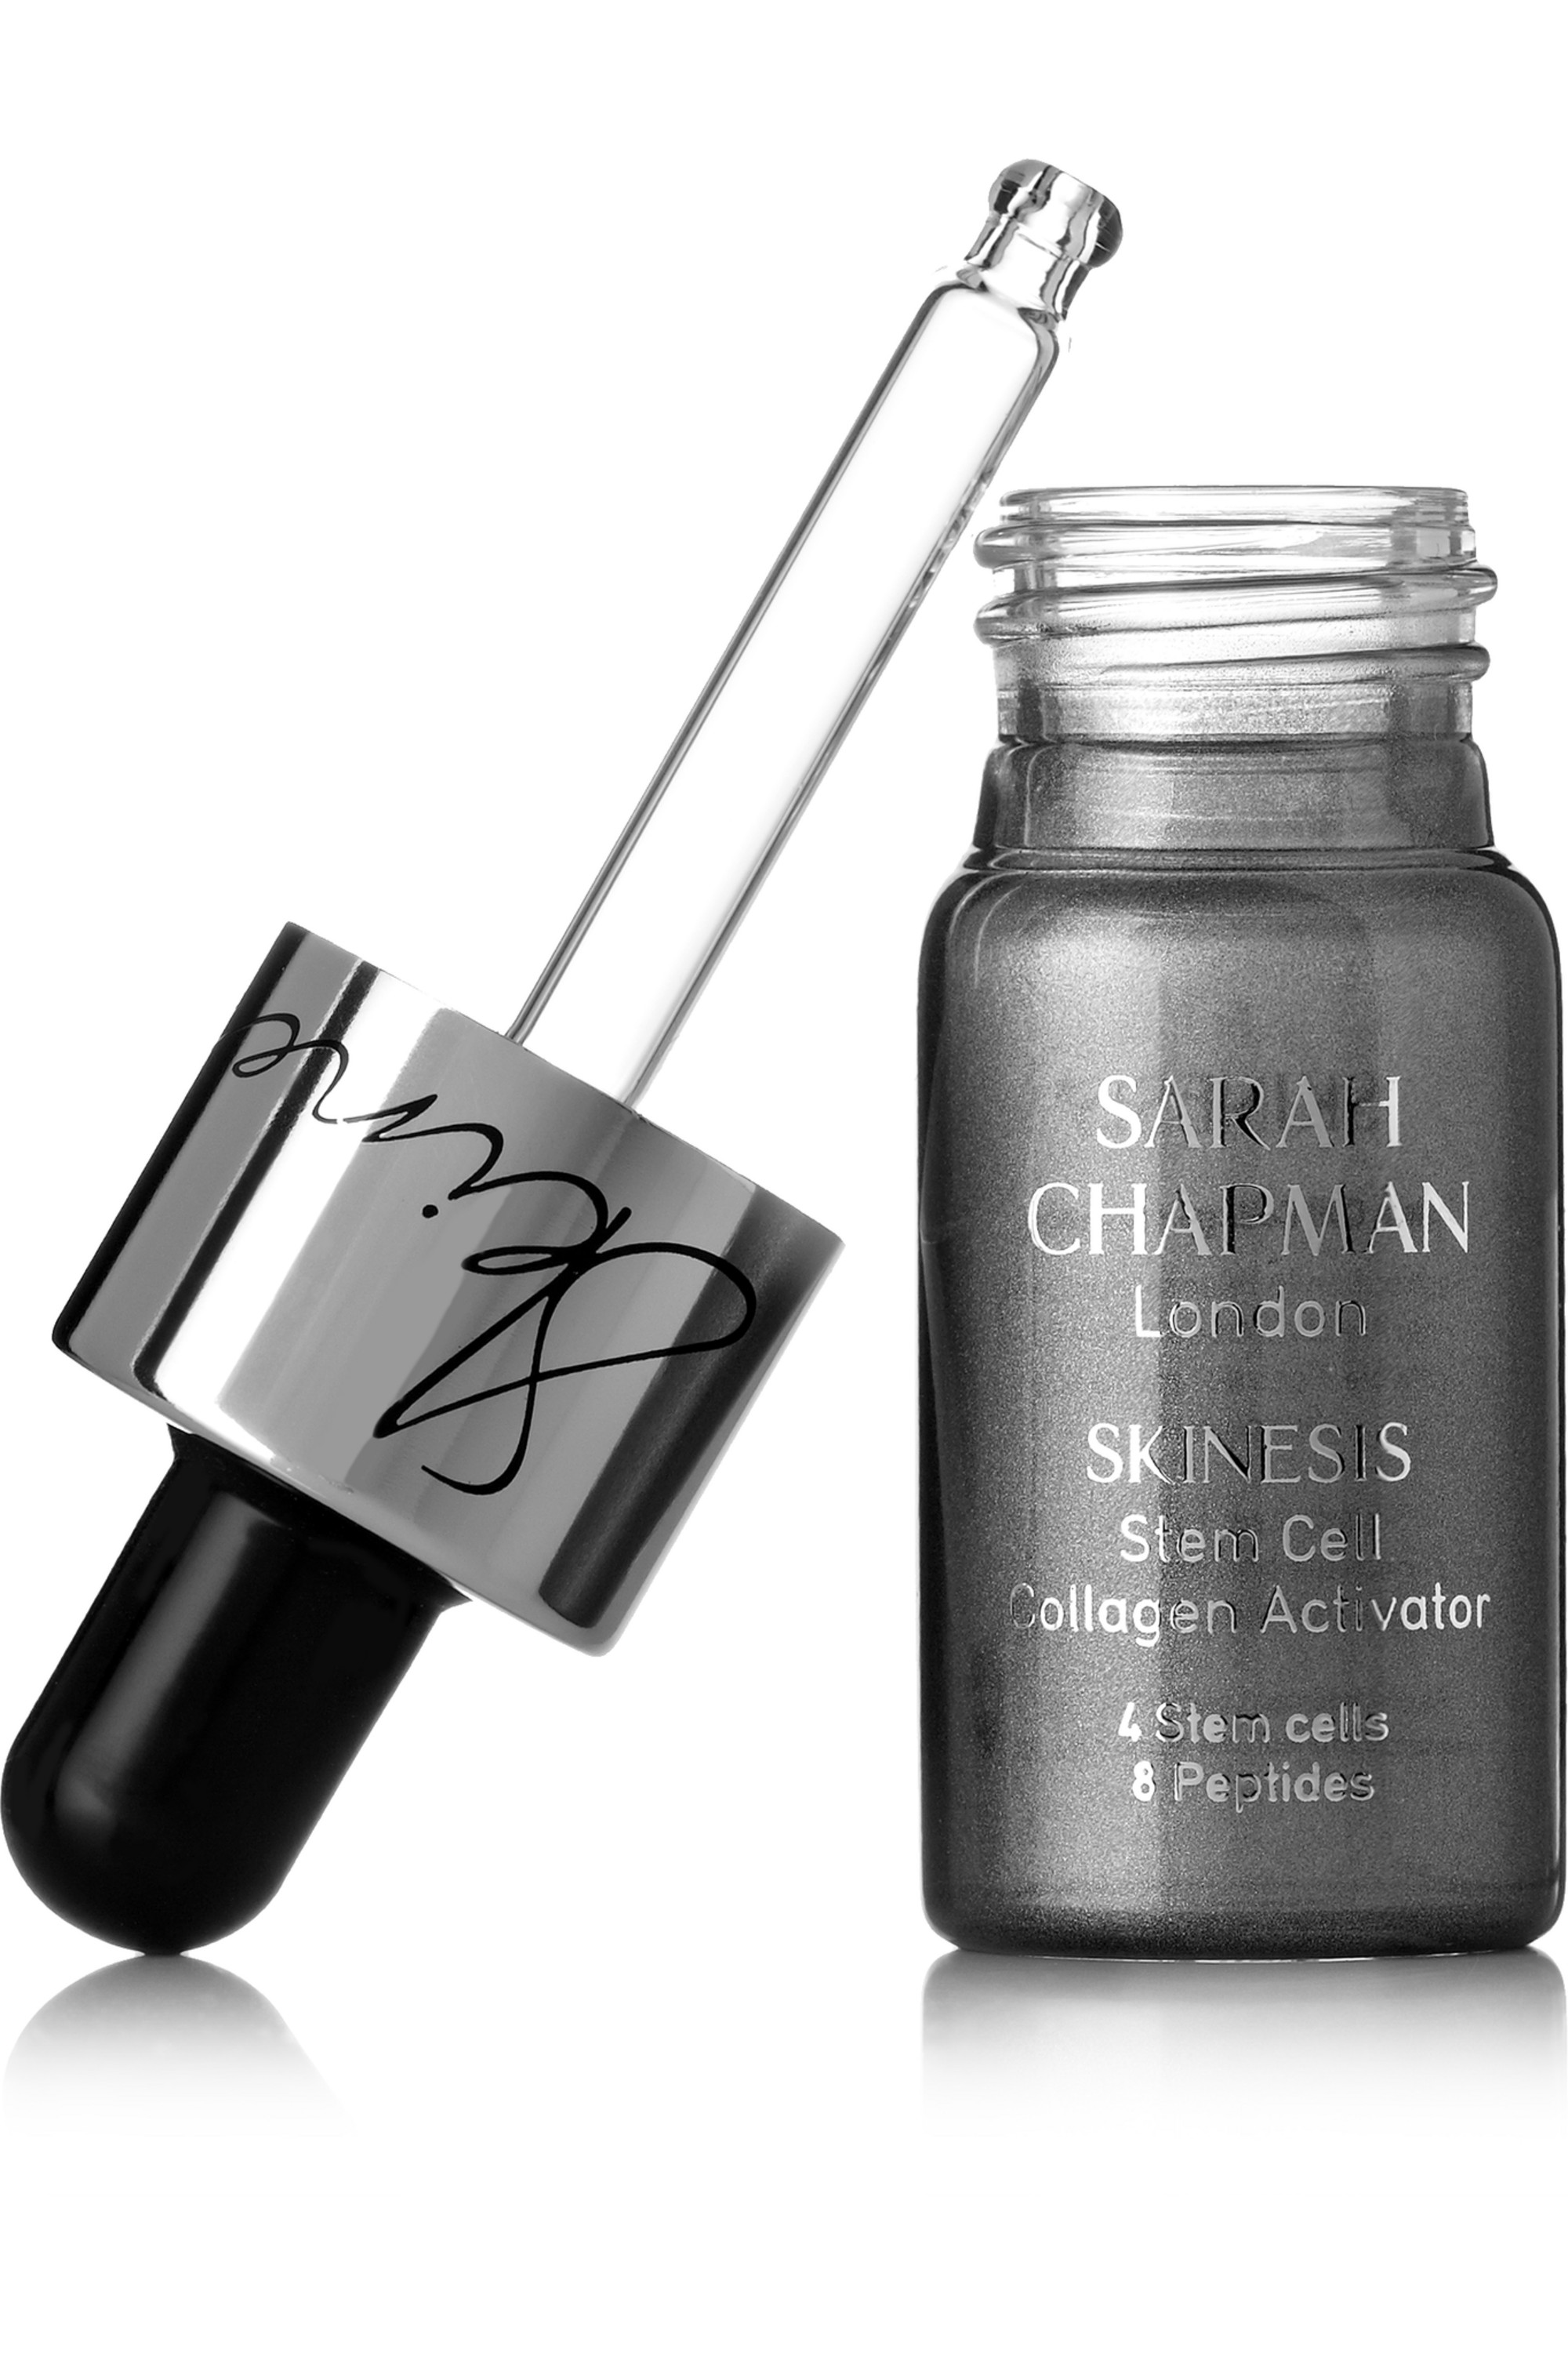 Sarah Chapman Skinesis Stem Cell Collagen Activator, 2 x 10ml